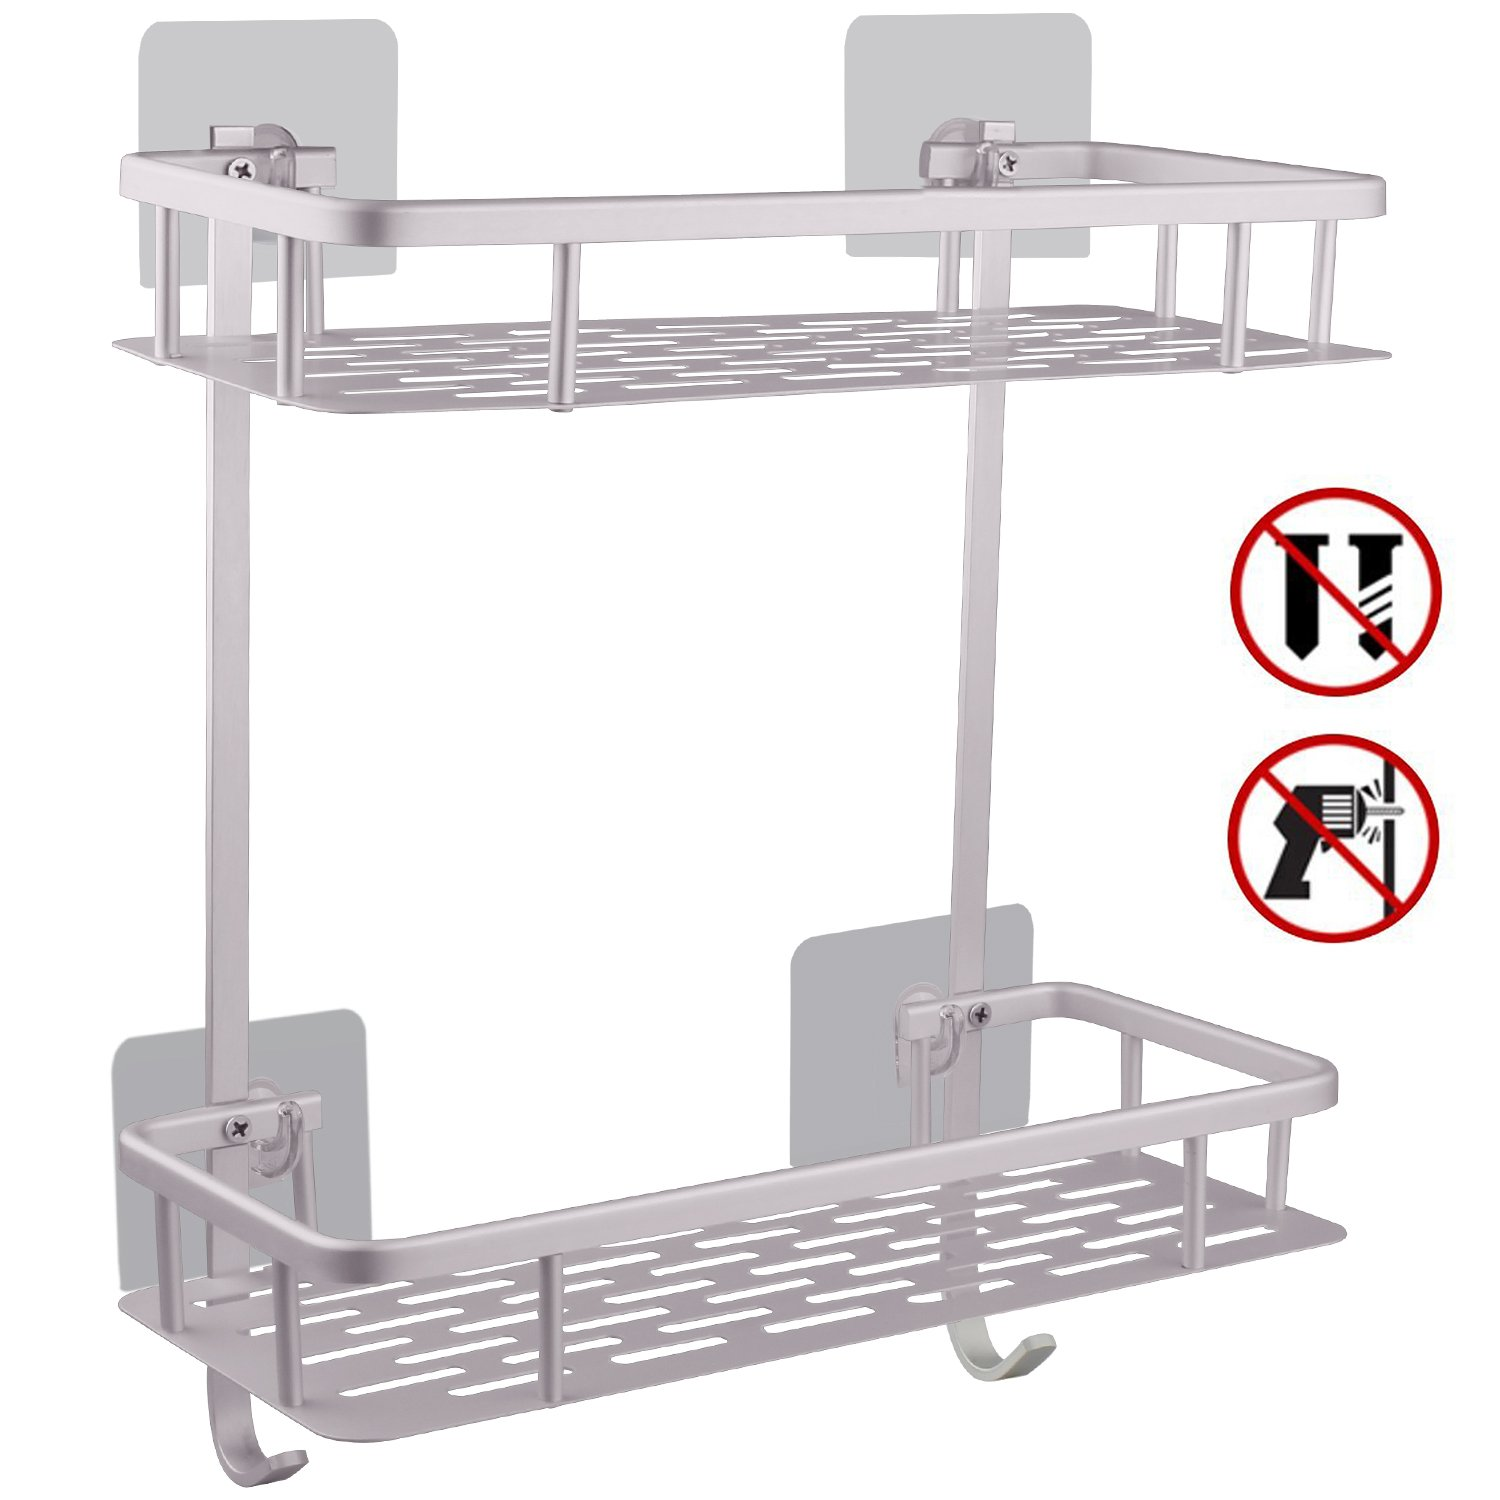 Hawsam No Drilling Bathroom Shelves, Aluminum 2 Tier Shower Shelf Caddy Adhesive Storage Basket for Shampoo